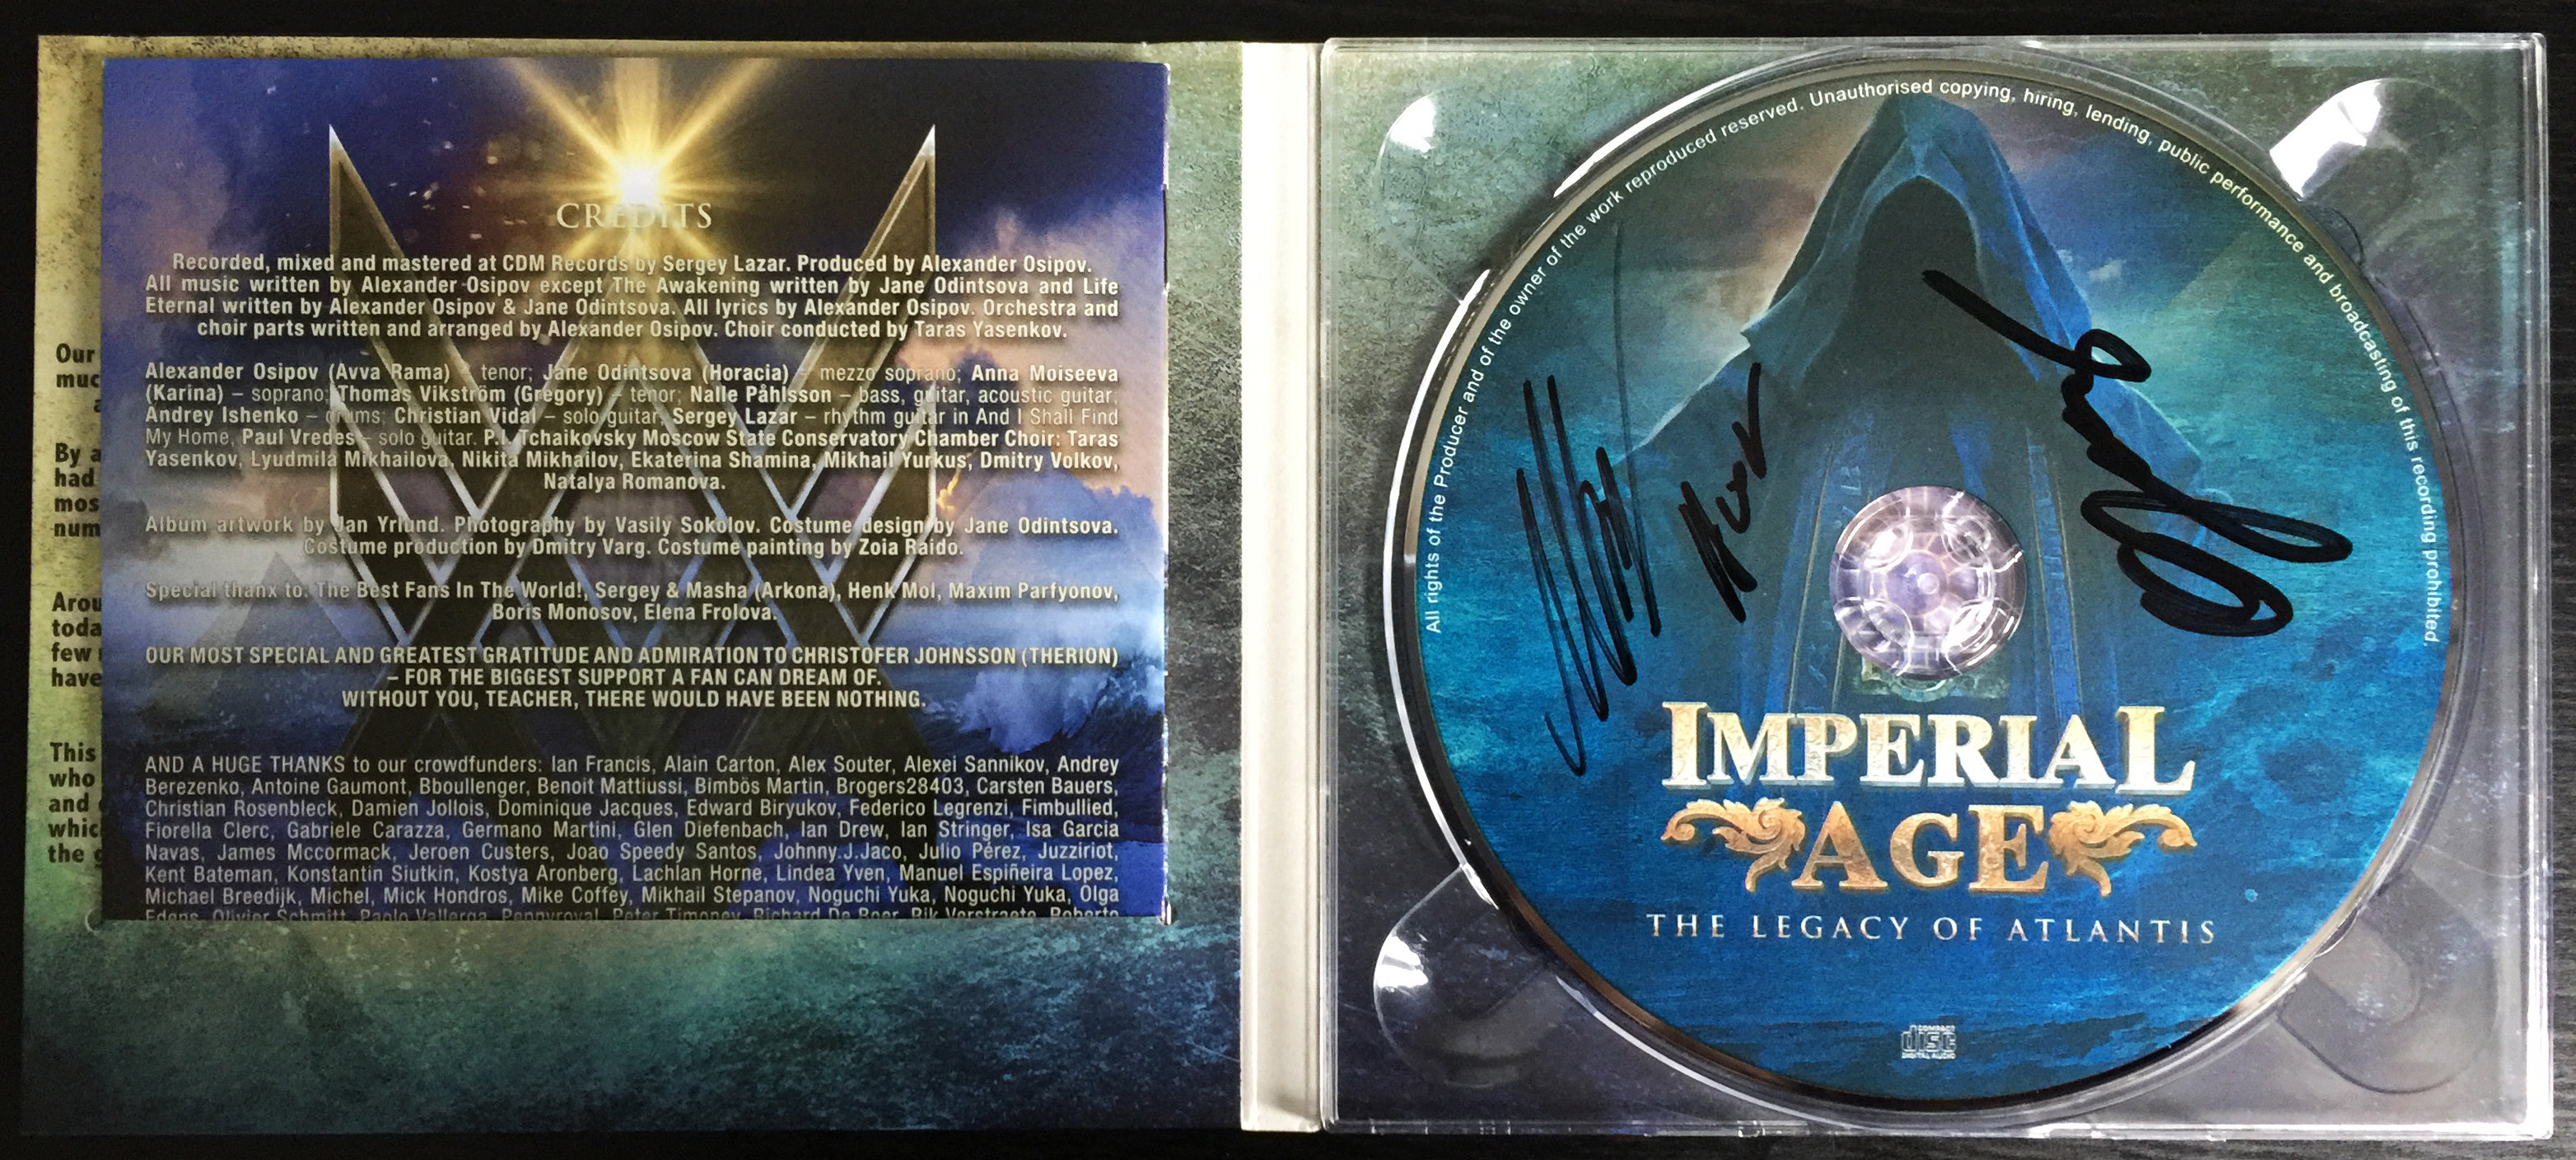 The Legacy of Atlantis [CD Digipack] LIMITED!